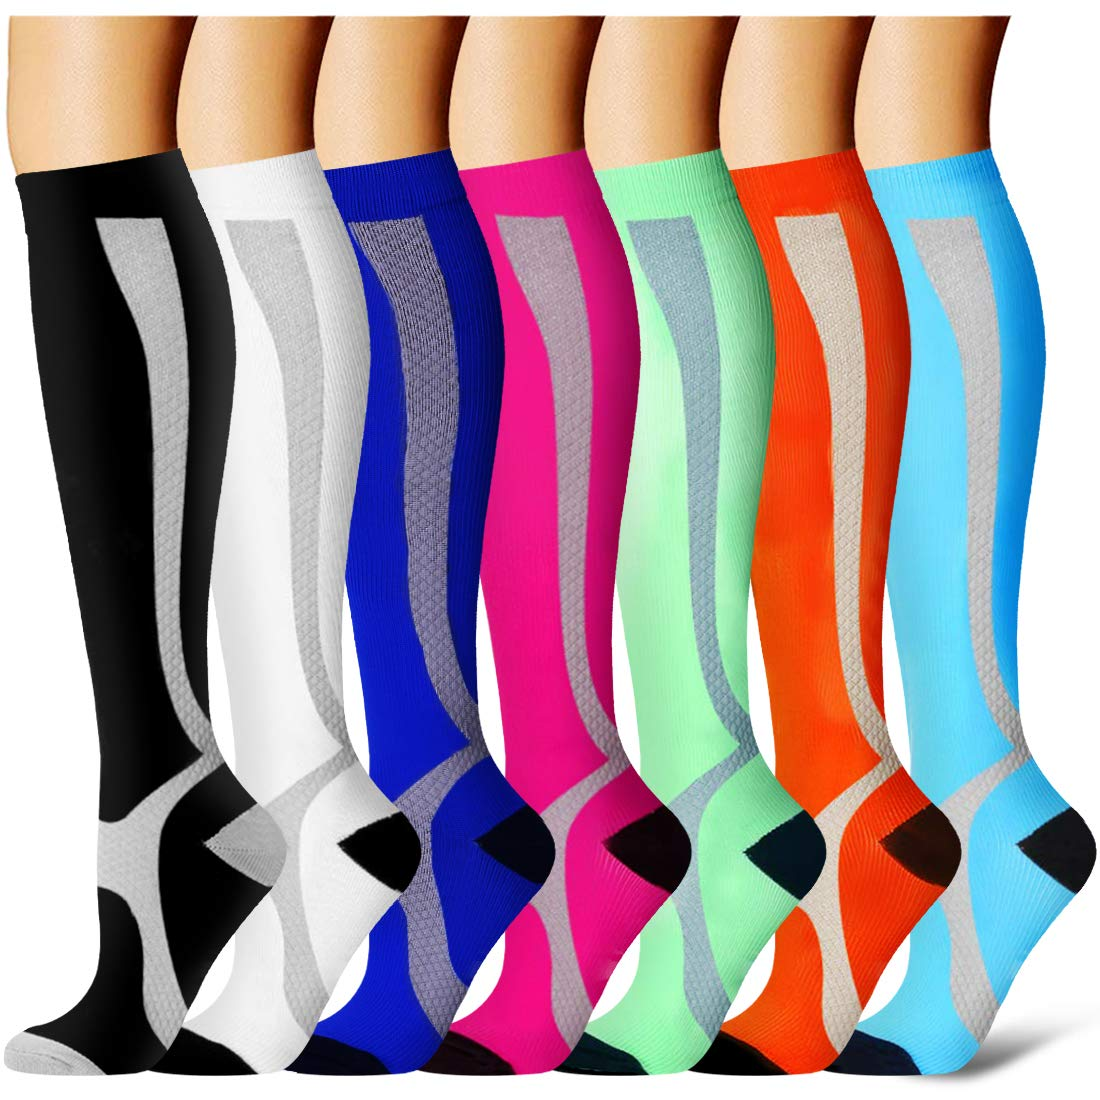 Compression Socks for Women and Men - Best Medical,for Running, Athletic, Varicose Veins, Travel by Laite Hebe